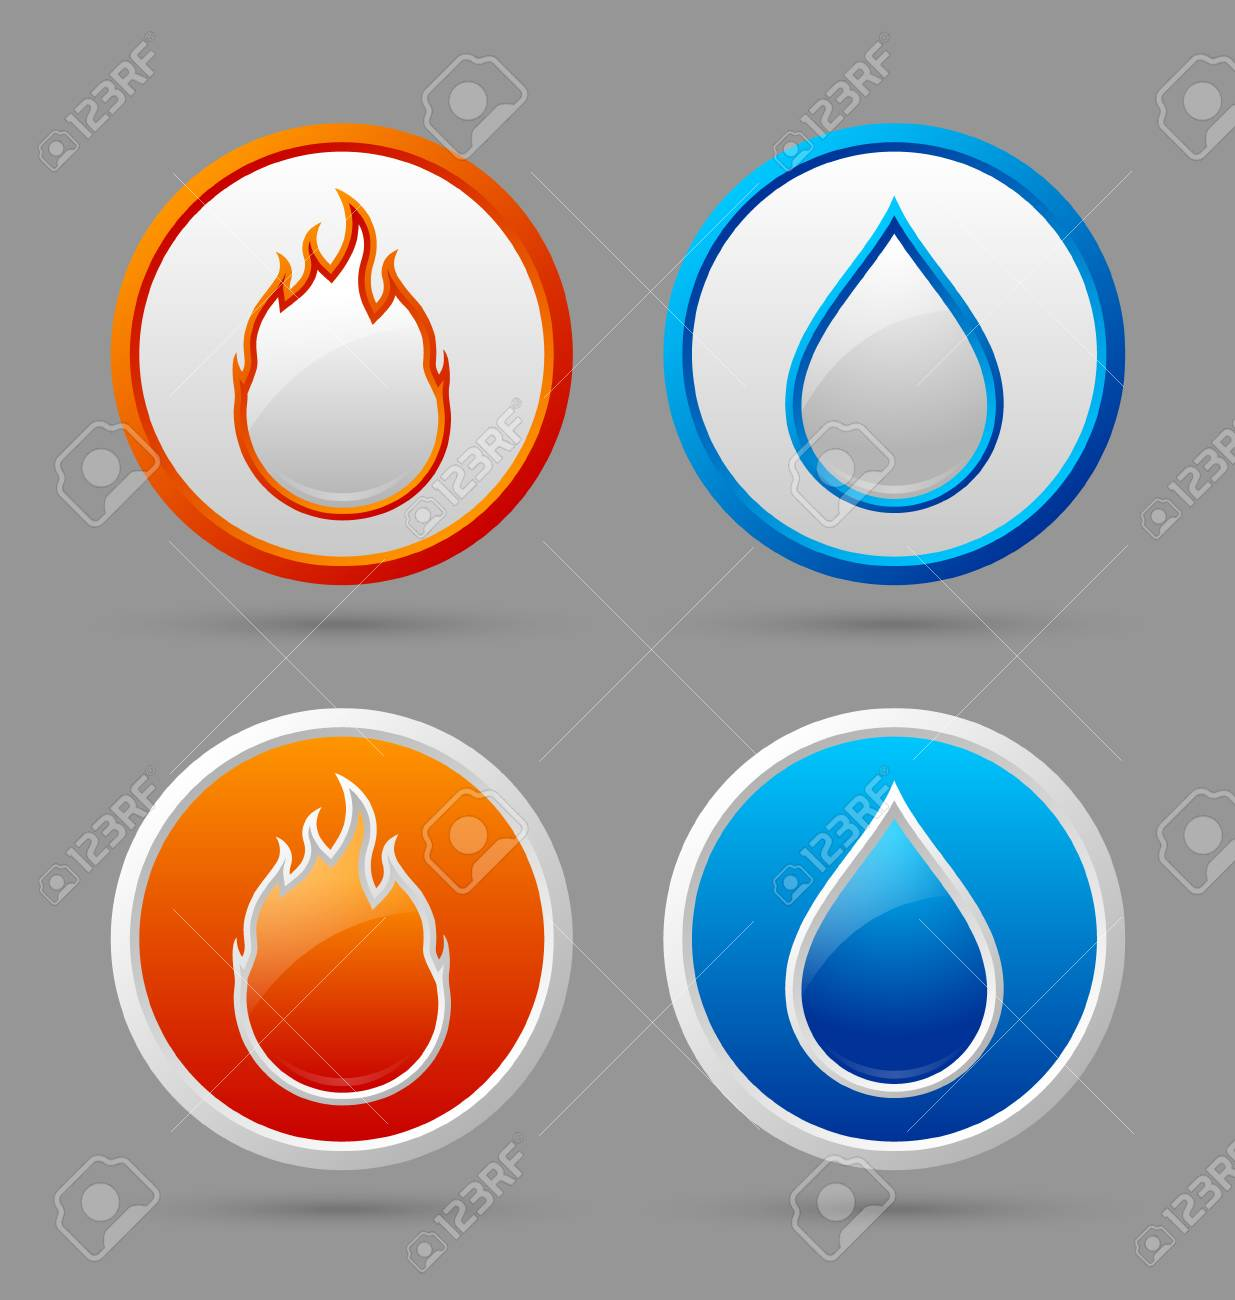 Glossy fire and water icons on grey background royalty free glossy fire and water icons on grey background stock vector 30547278 biocorpaavc Choice Image